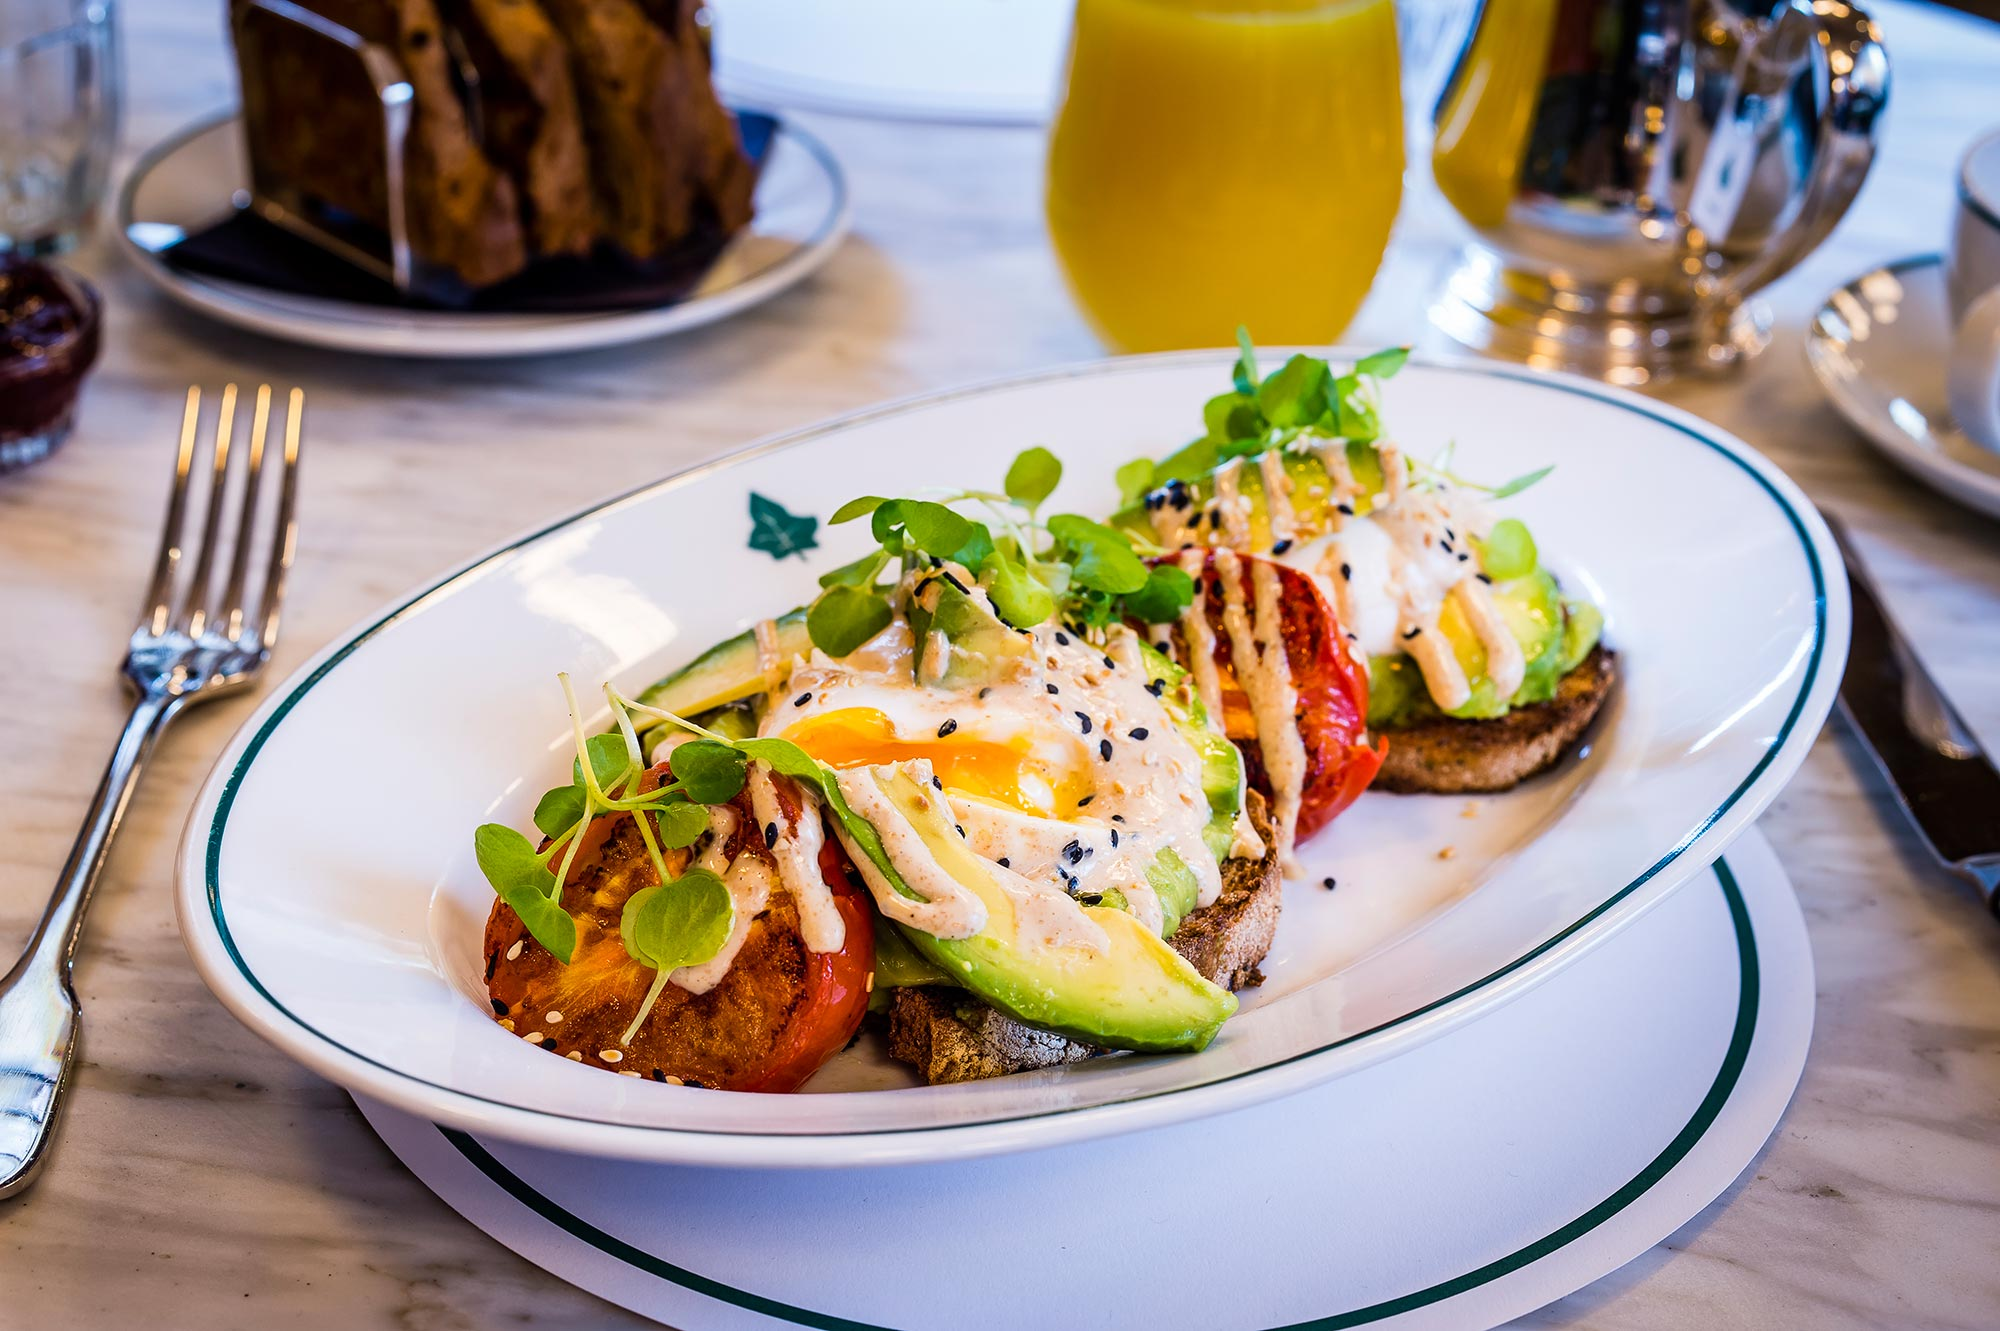 Avocado, Tomato & Sesame at The Ivy Harrogate - The Ivy Harrogate